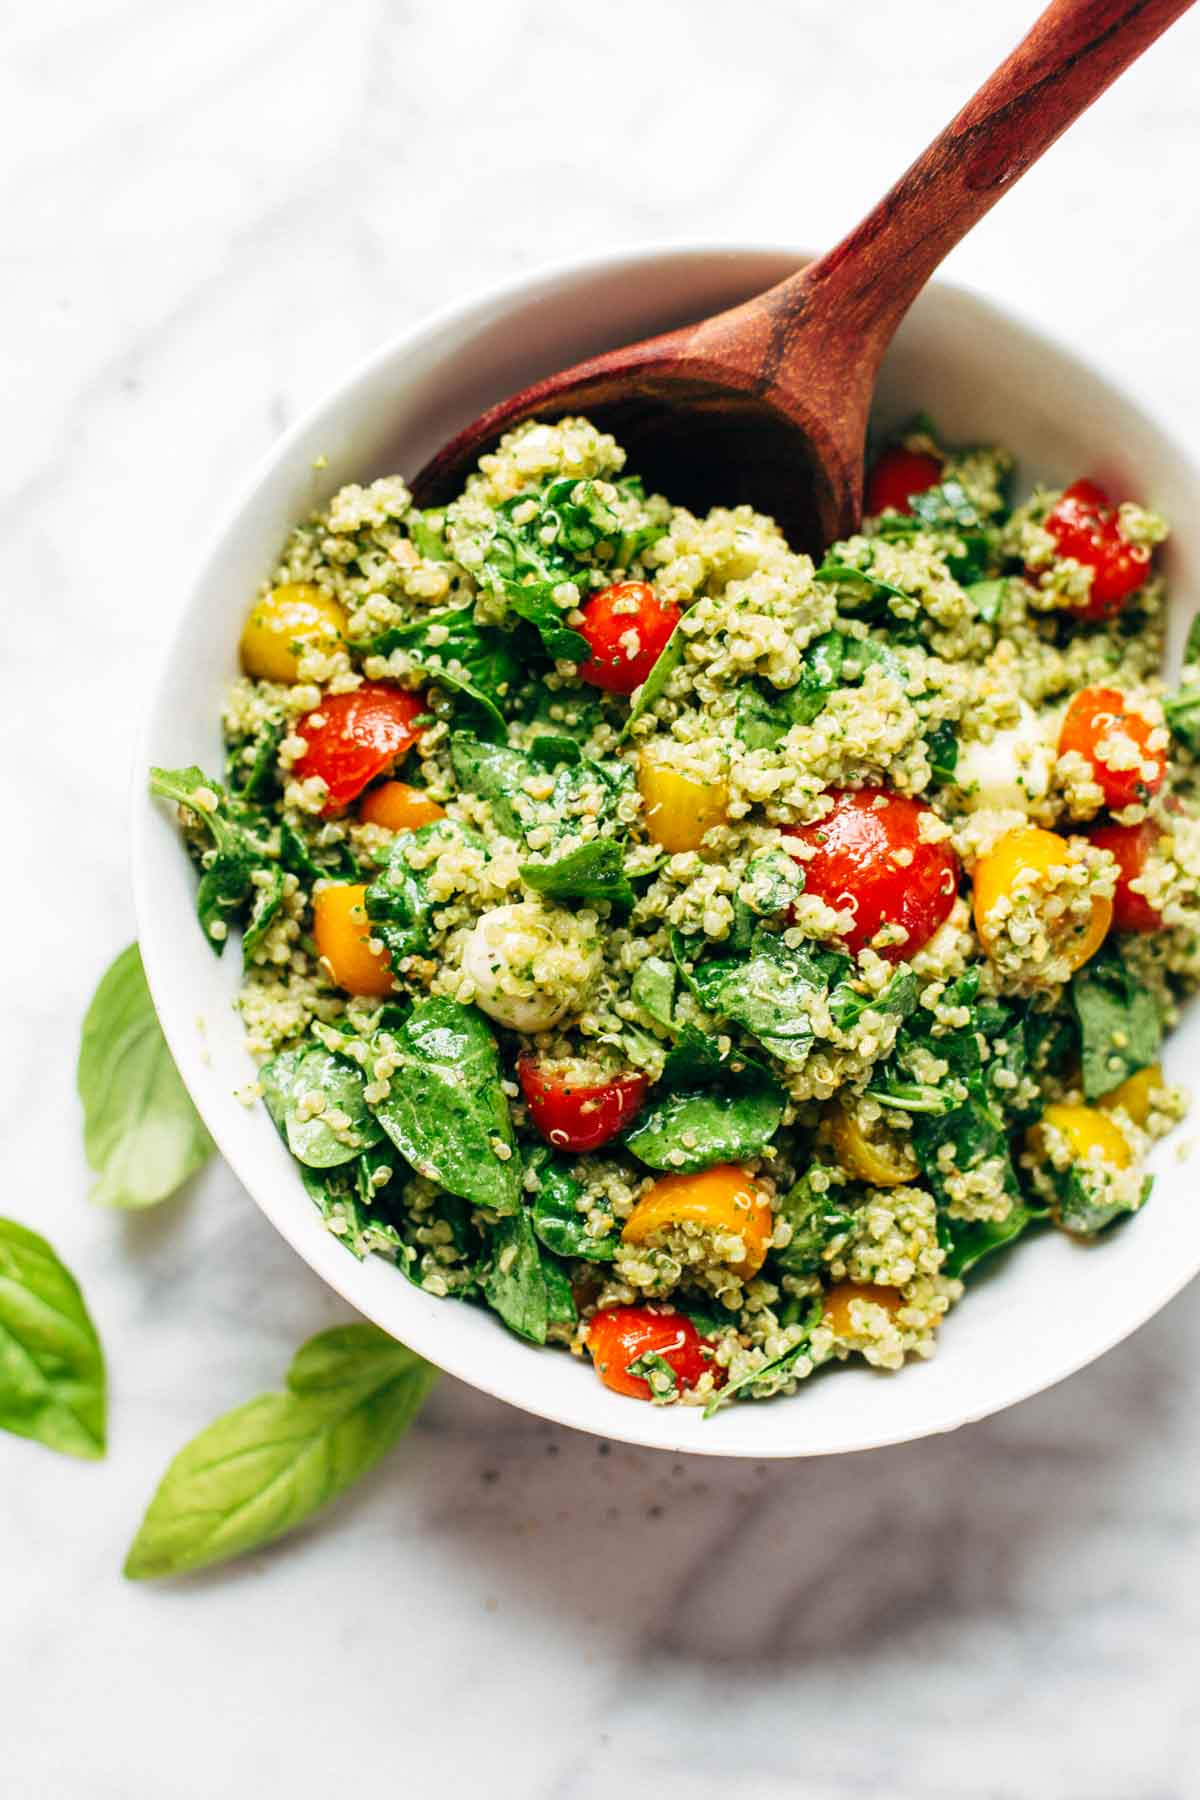 Summer Salads For Dinner  10 Perfect Summer Salads to Eat for Dinner The Sweetest